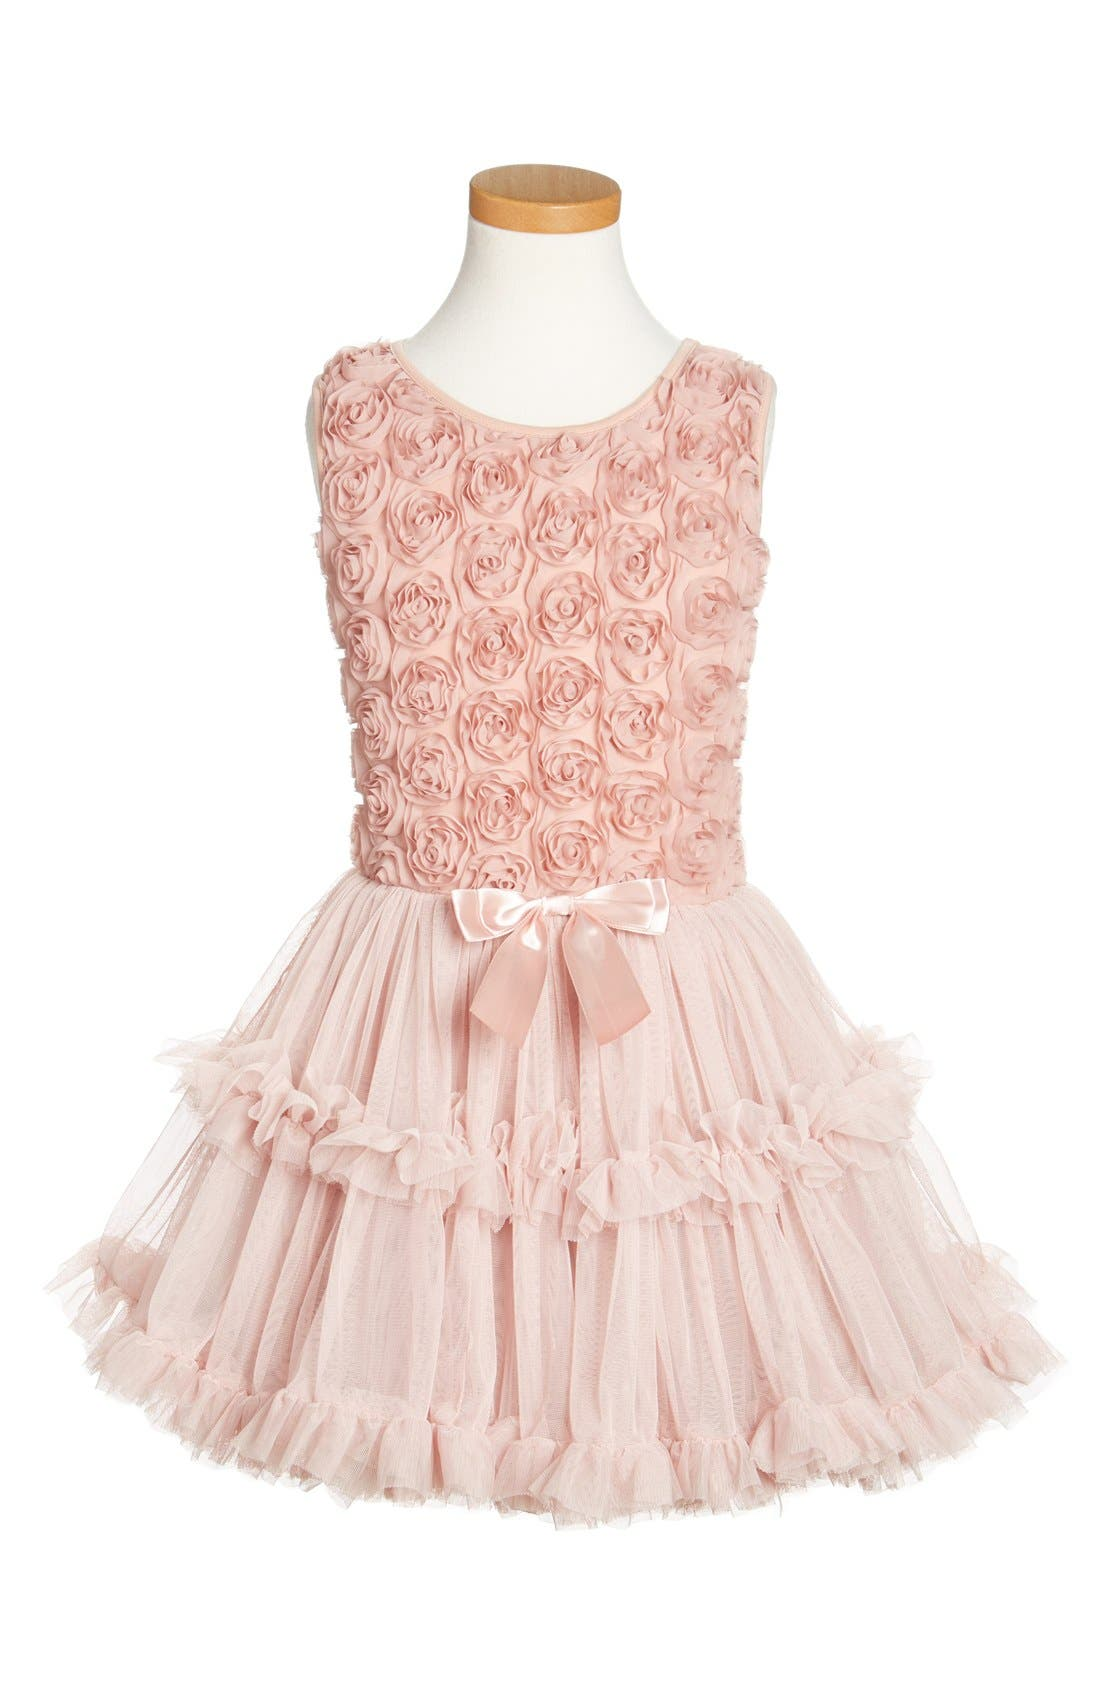 Popatu Rosebud Pettidress (Toddlers & Little Girls)